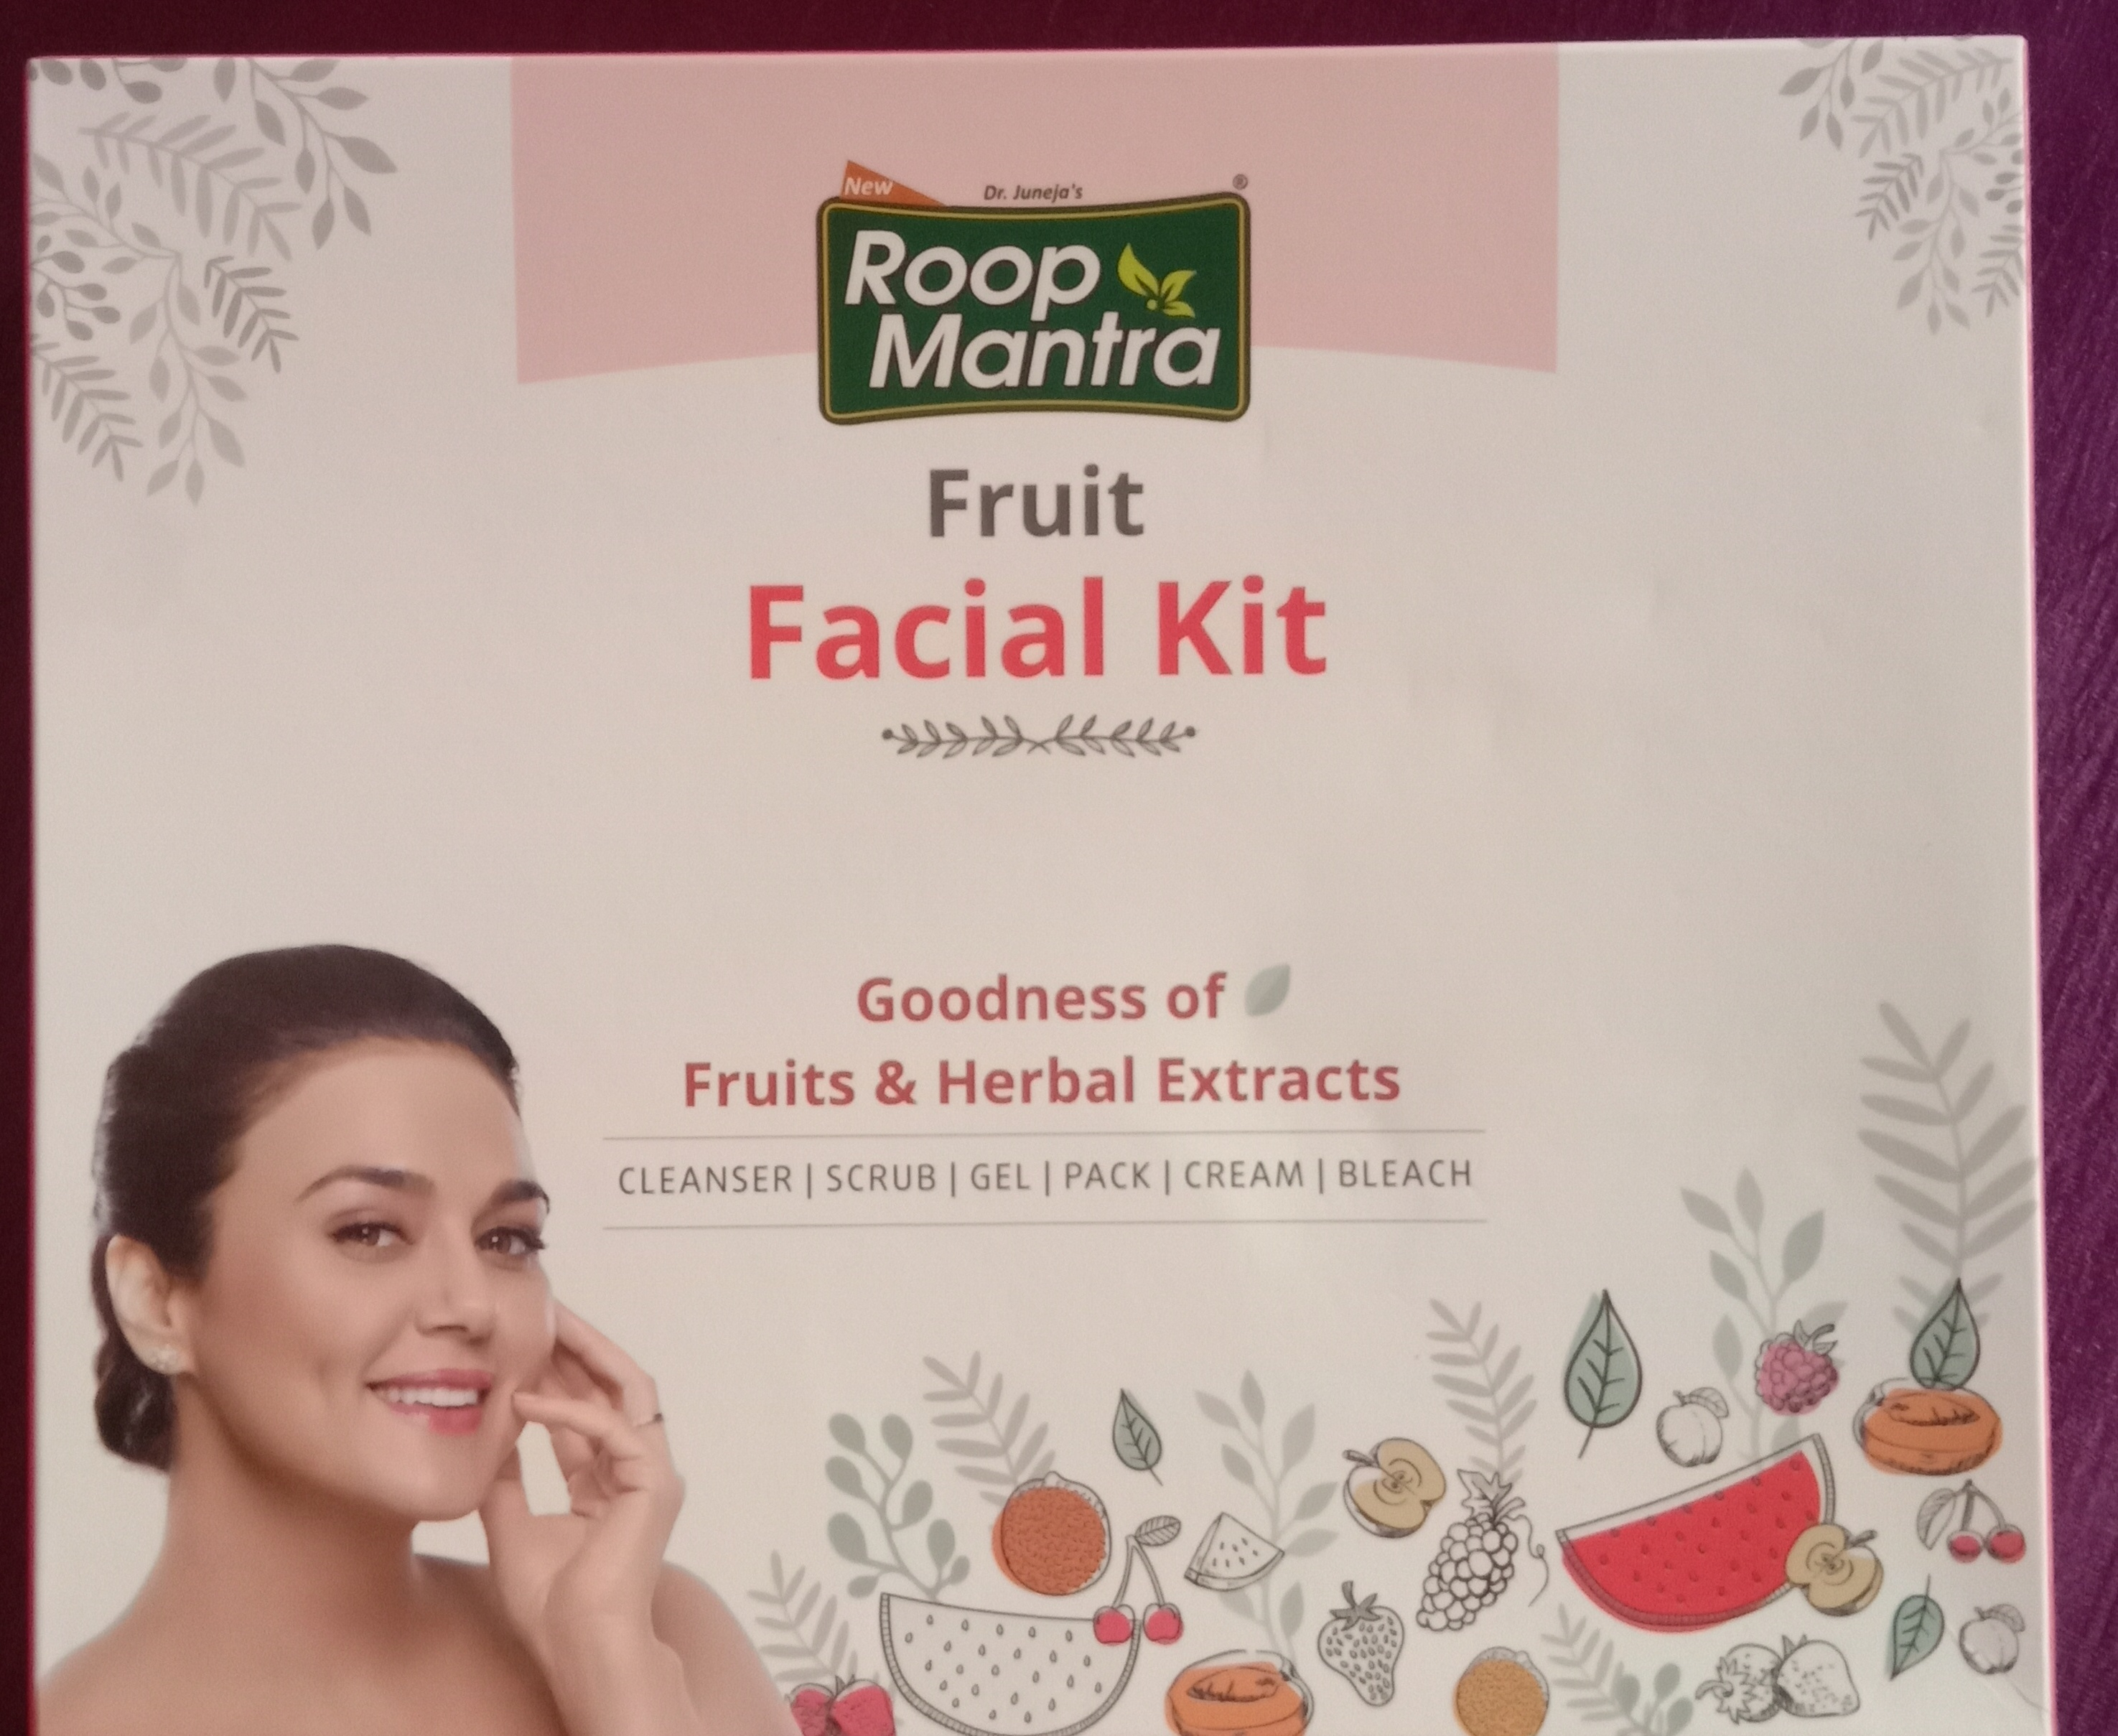 Roop Mantra Fruit Facial Kit-In love with this facial kit-By sufiaansarii-1